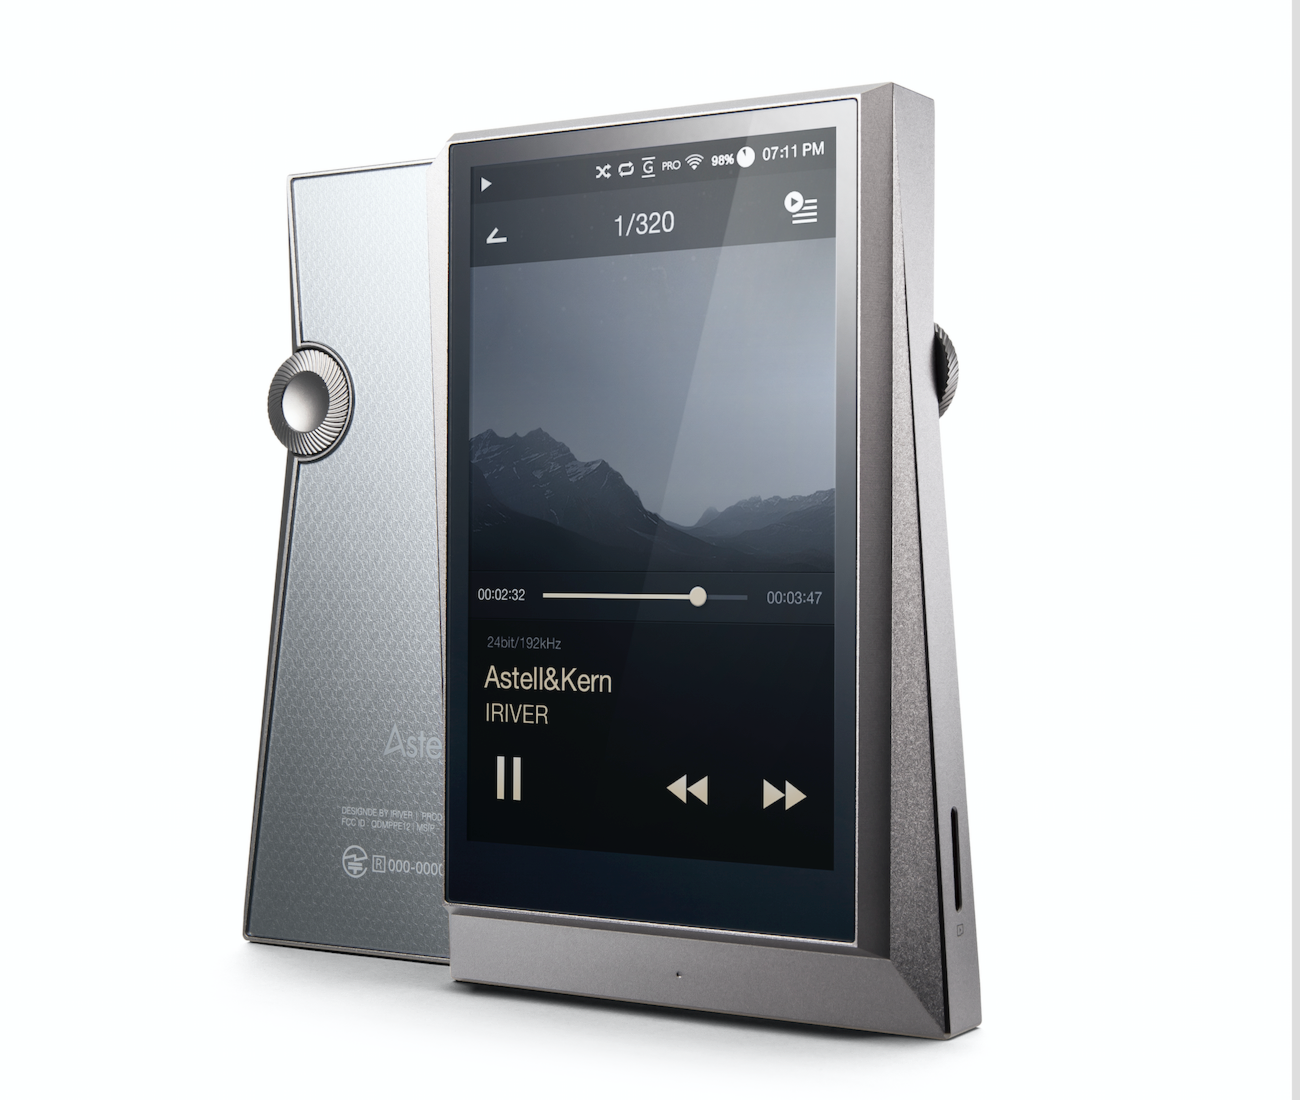 AK 320 - High-End Player der neuesten Generation